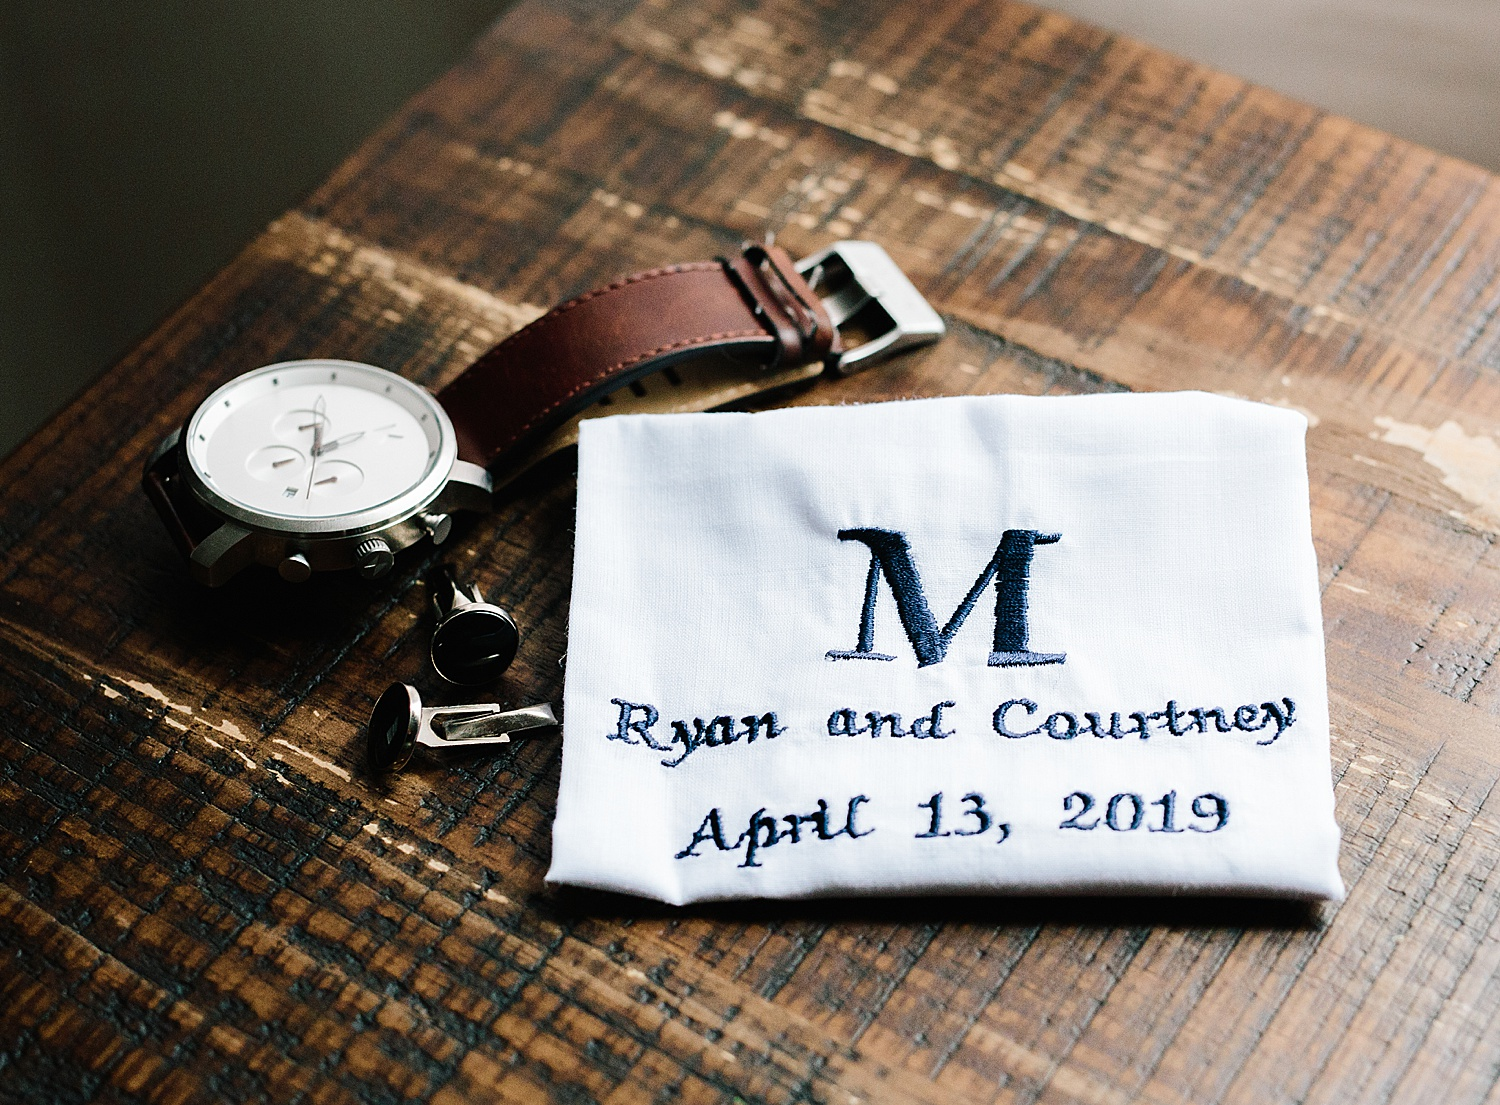 courtneyryan_sheraton_societyhill_philadelphia_merchantsexchange_wedding_image009.jpg